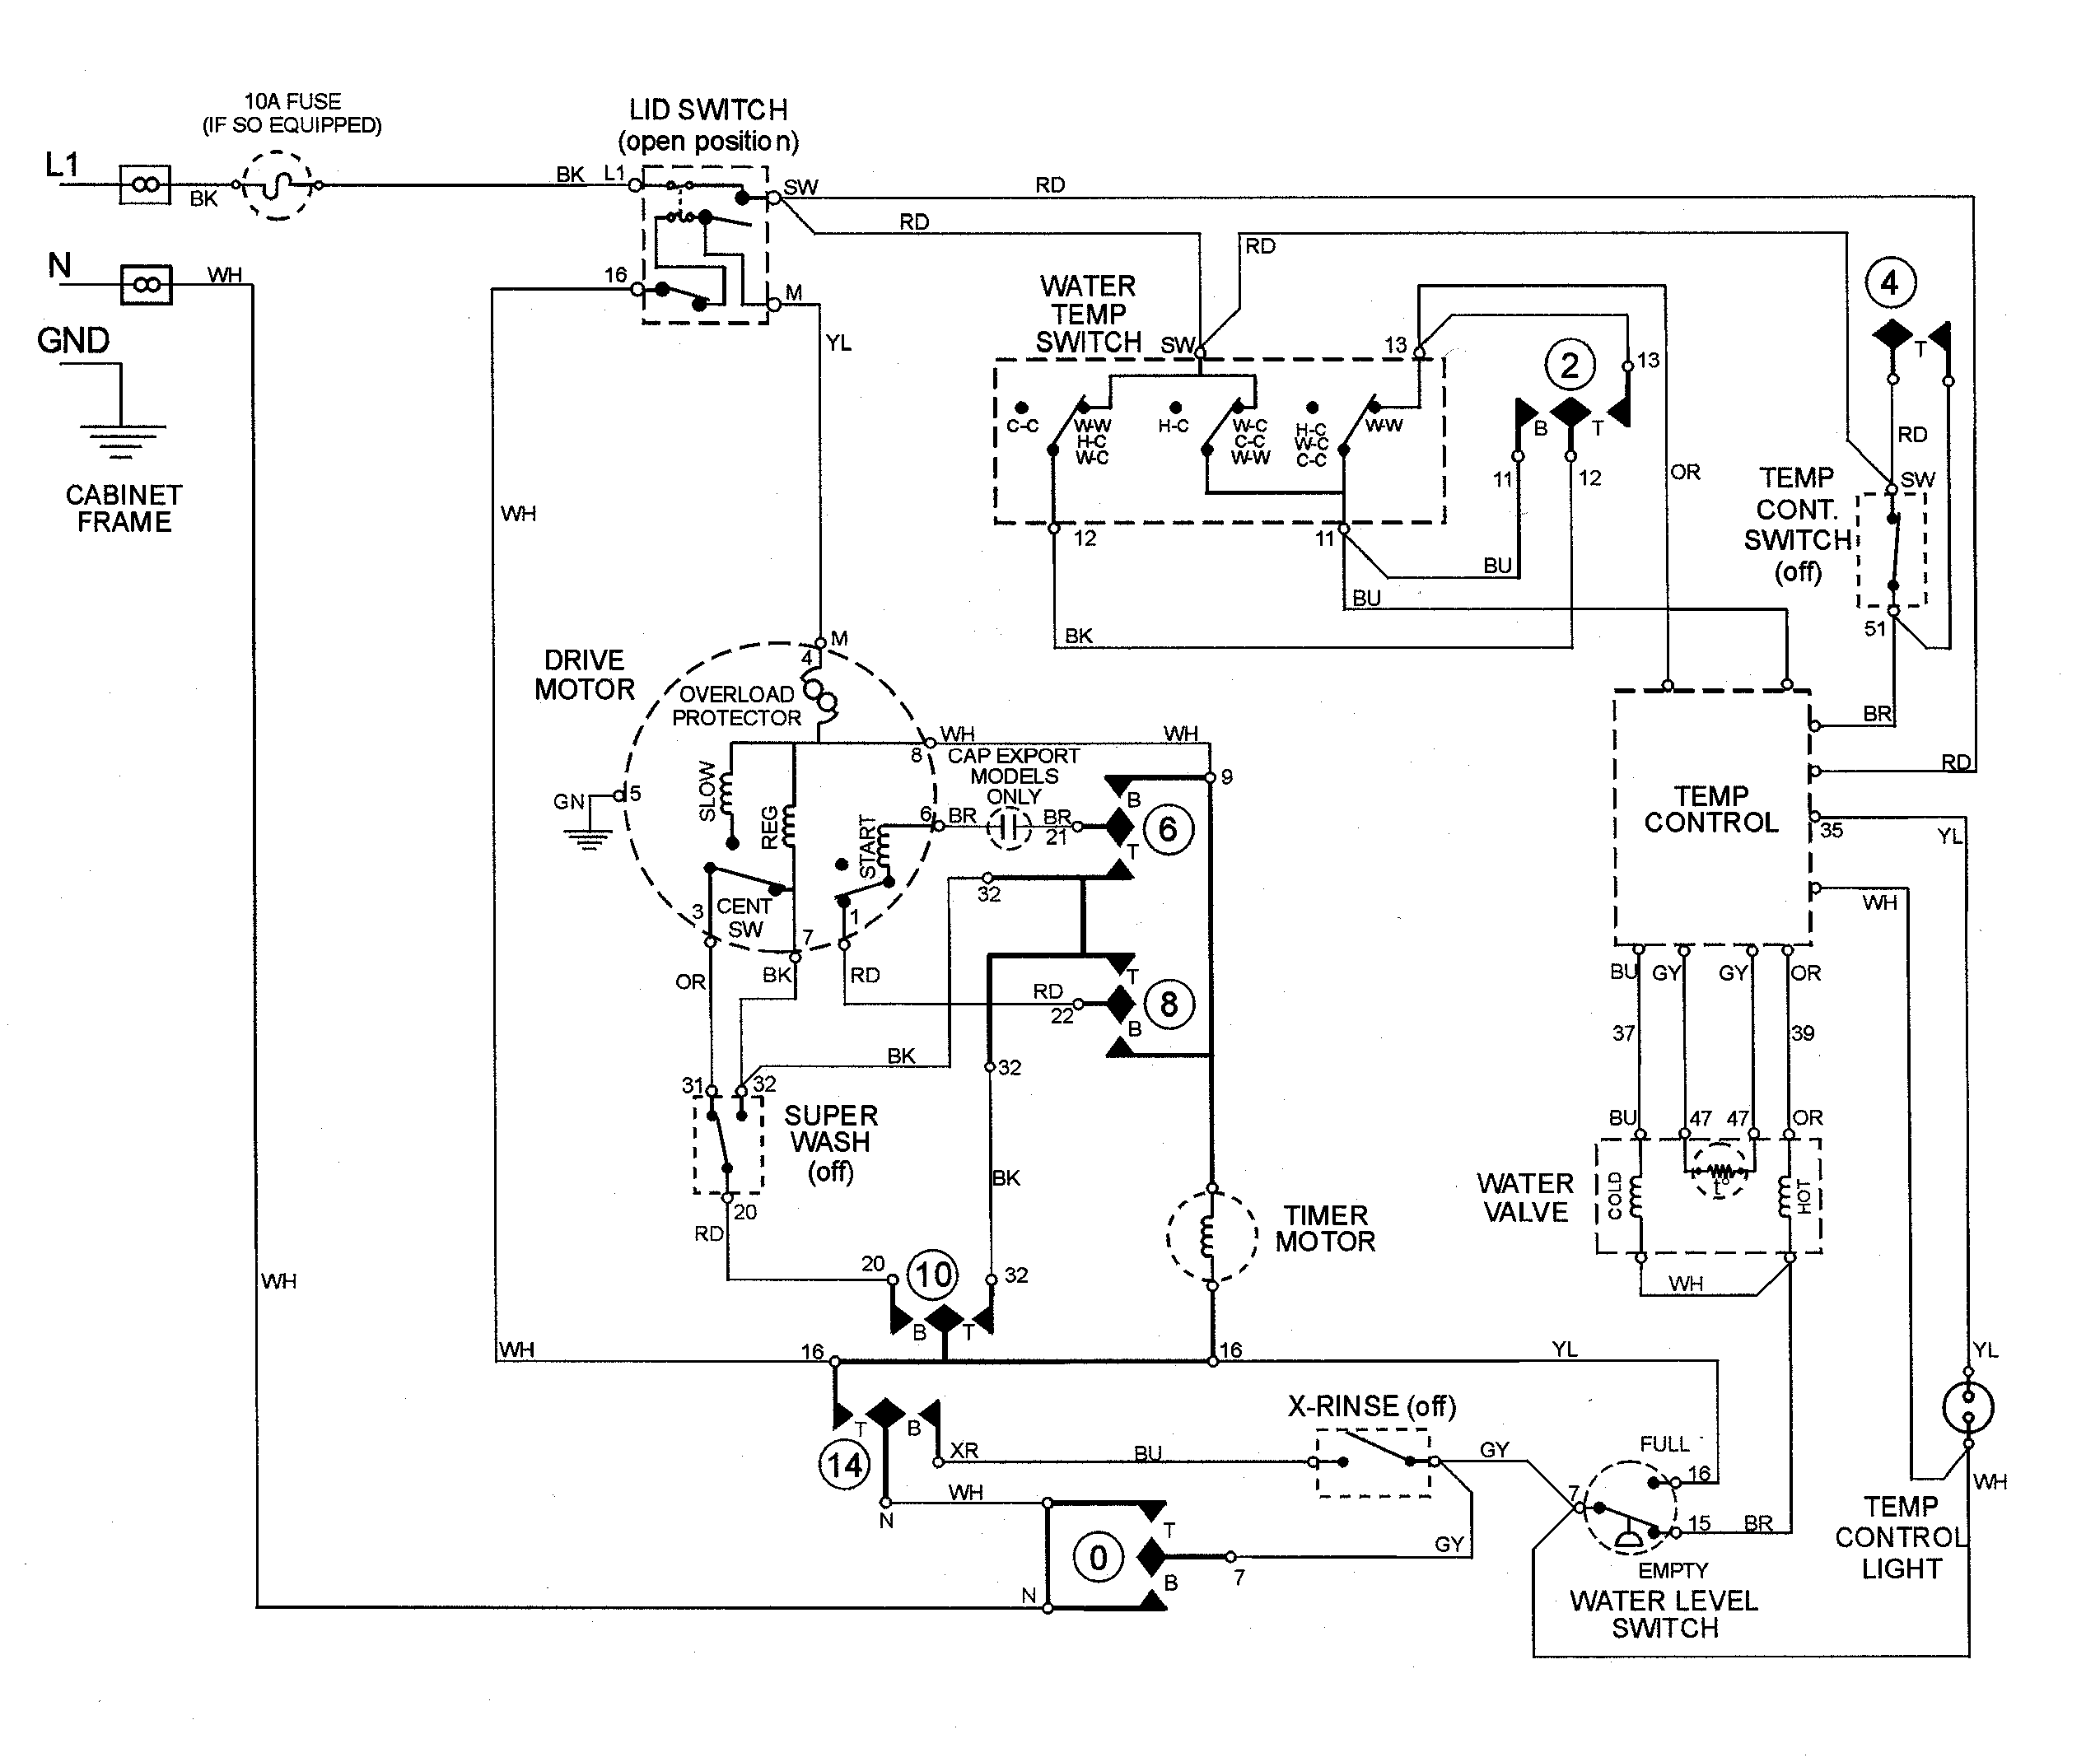 wiring diagram of videocon washing machine wiring diagram wbse3120b2ww ge washing machine